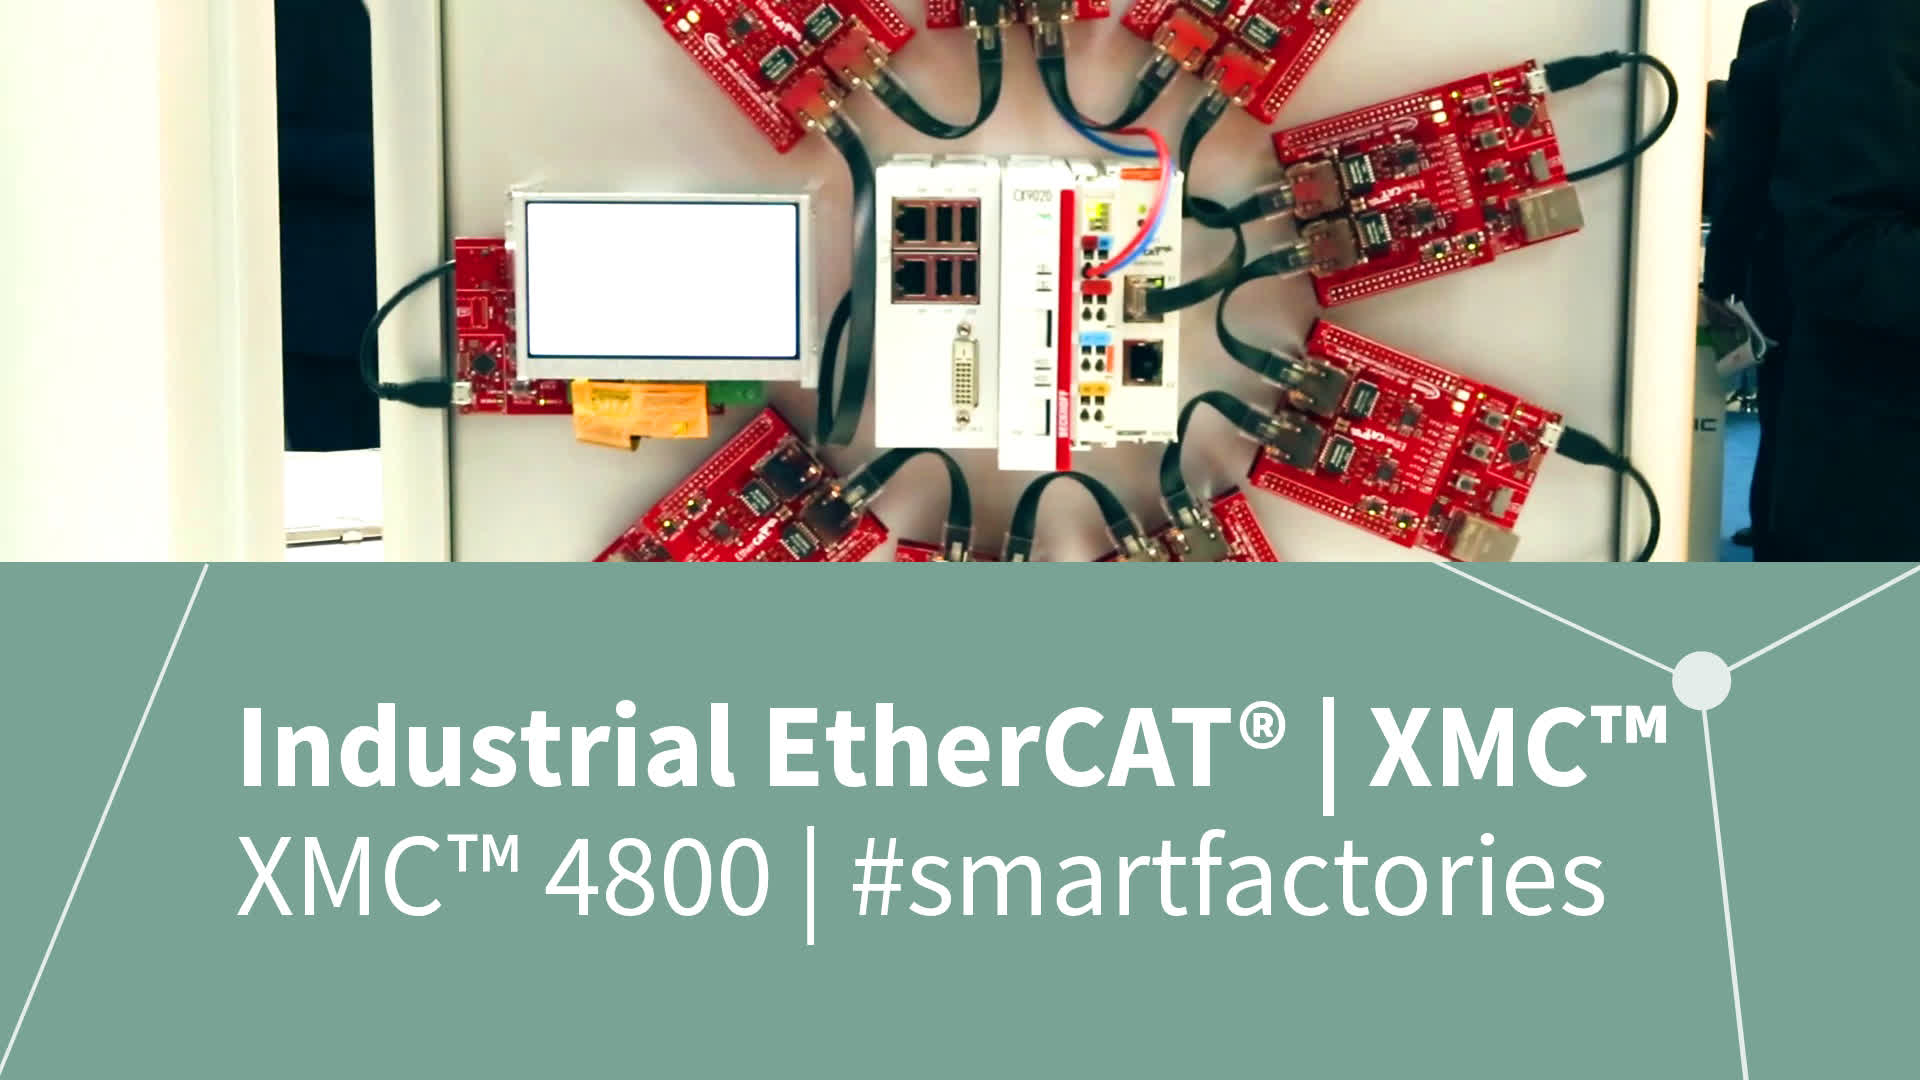 electronica 2016 - Industrial EtherCAT™ network with XMC™